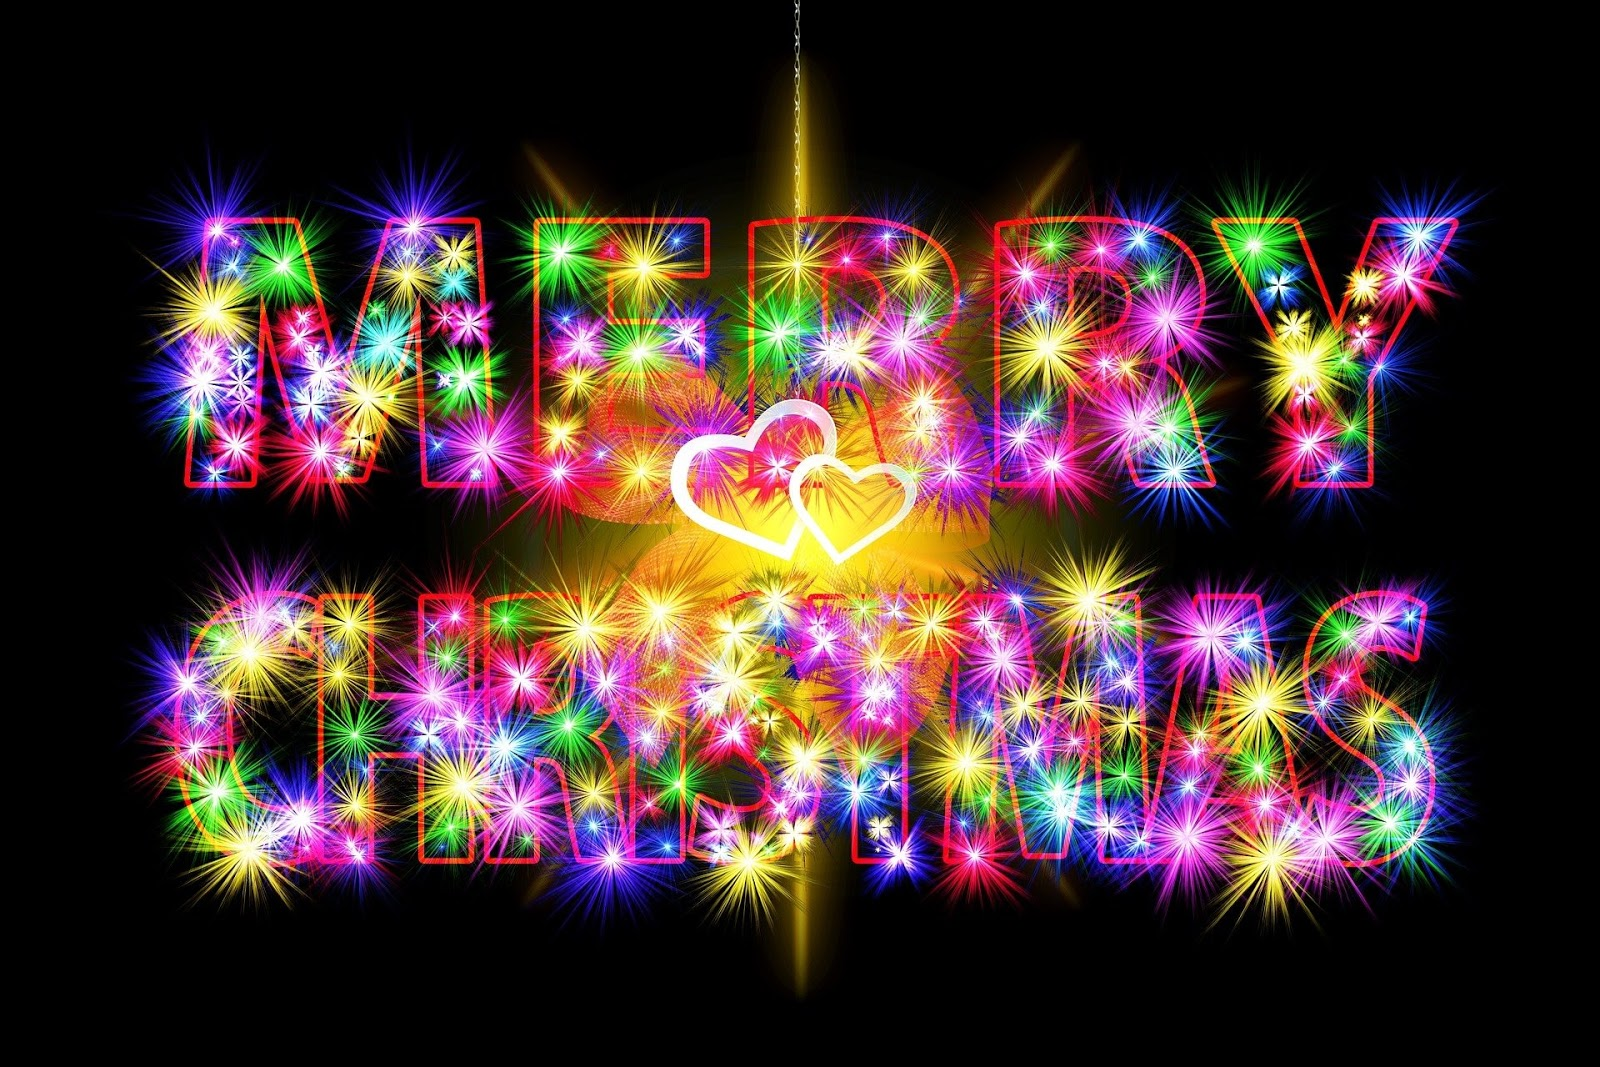 Merry Christmas Happy New Year 2020 Images   POETRY CLUB 1600x1067